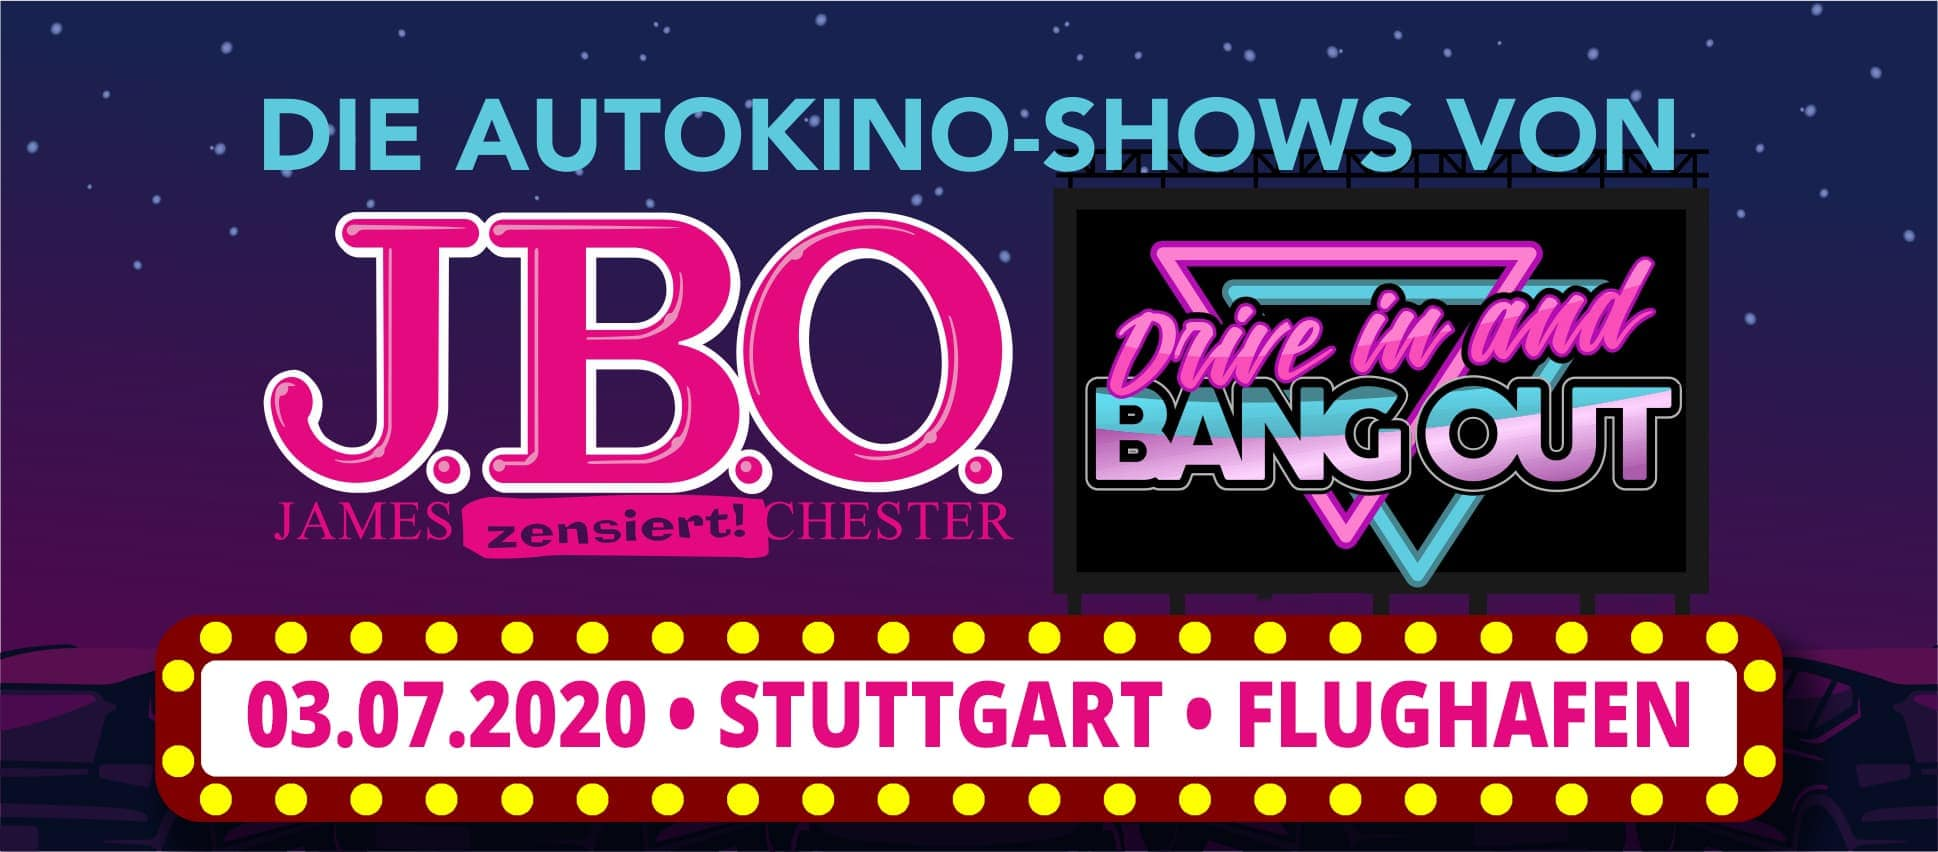 🚘  Drive in and Bang out: Freitag, 3. Juli 2020 - Live Sommer 2020, Stuttgart